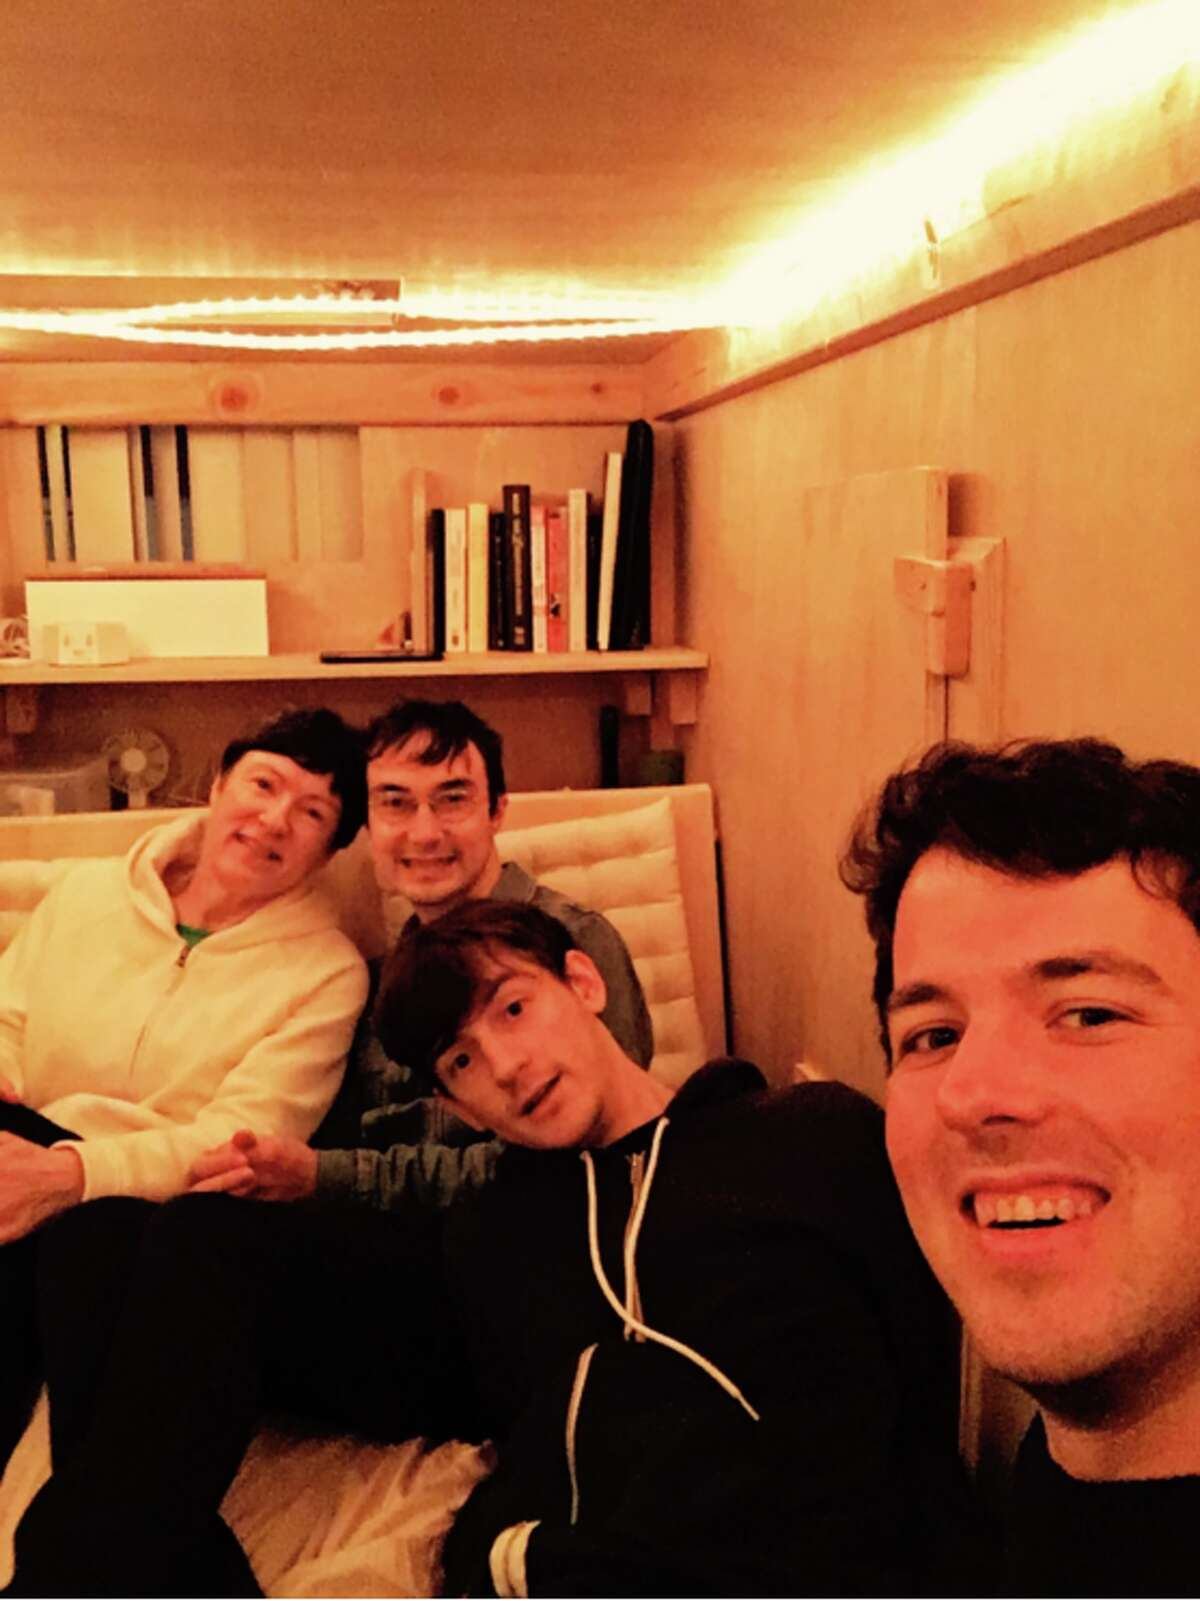 San Francisco resident Peter Berkowitz lives in a box in a friend's living room and pays only $400 a month for rent. Peter is pictured right in this group photo.